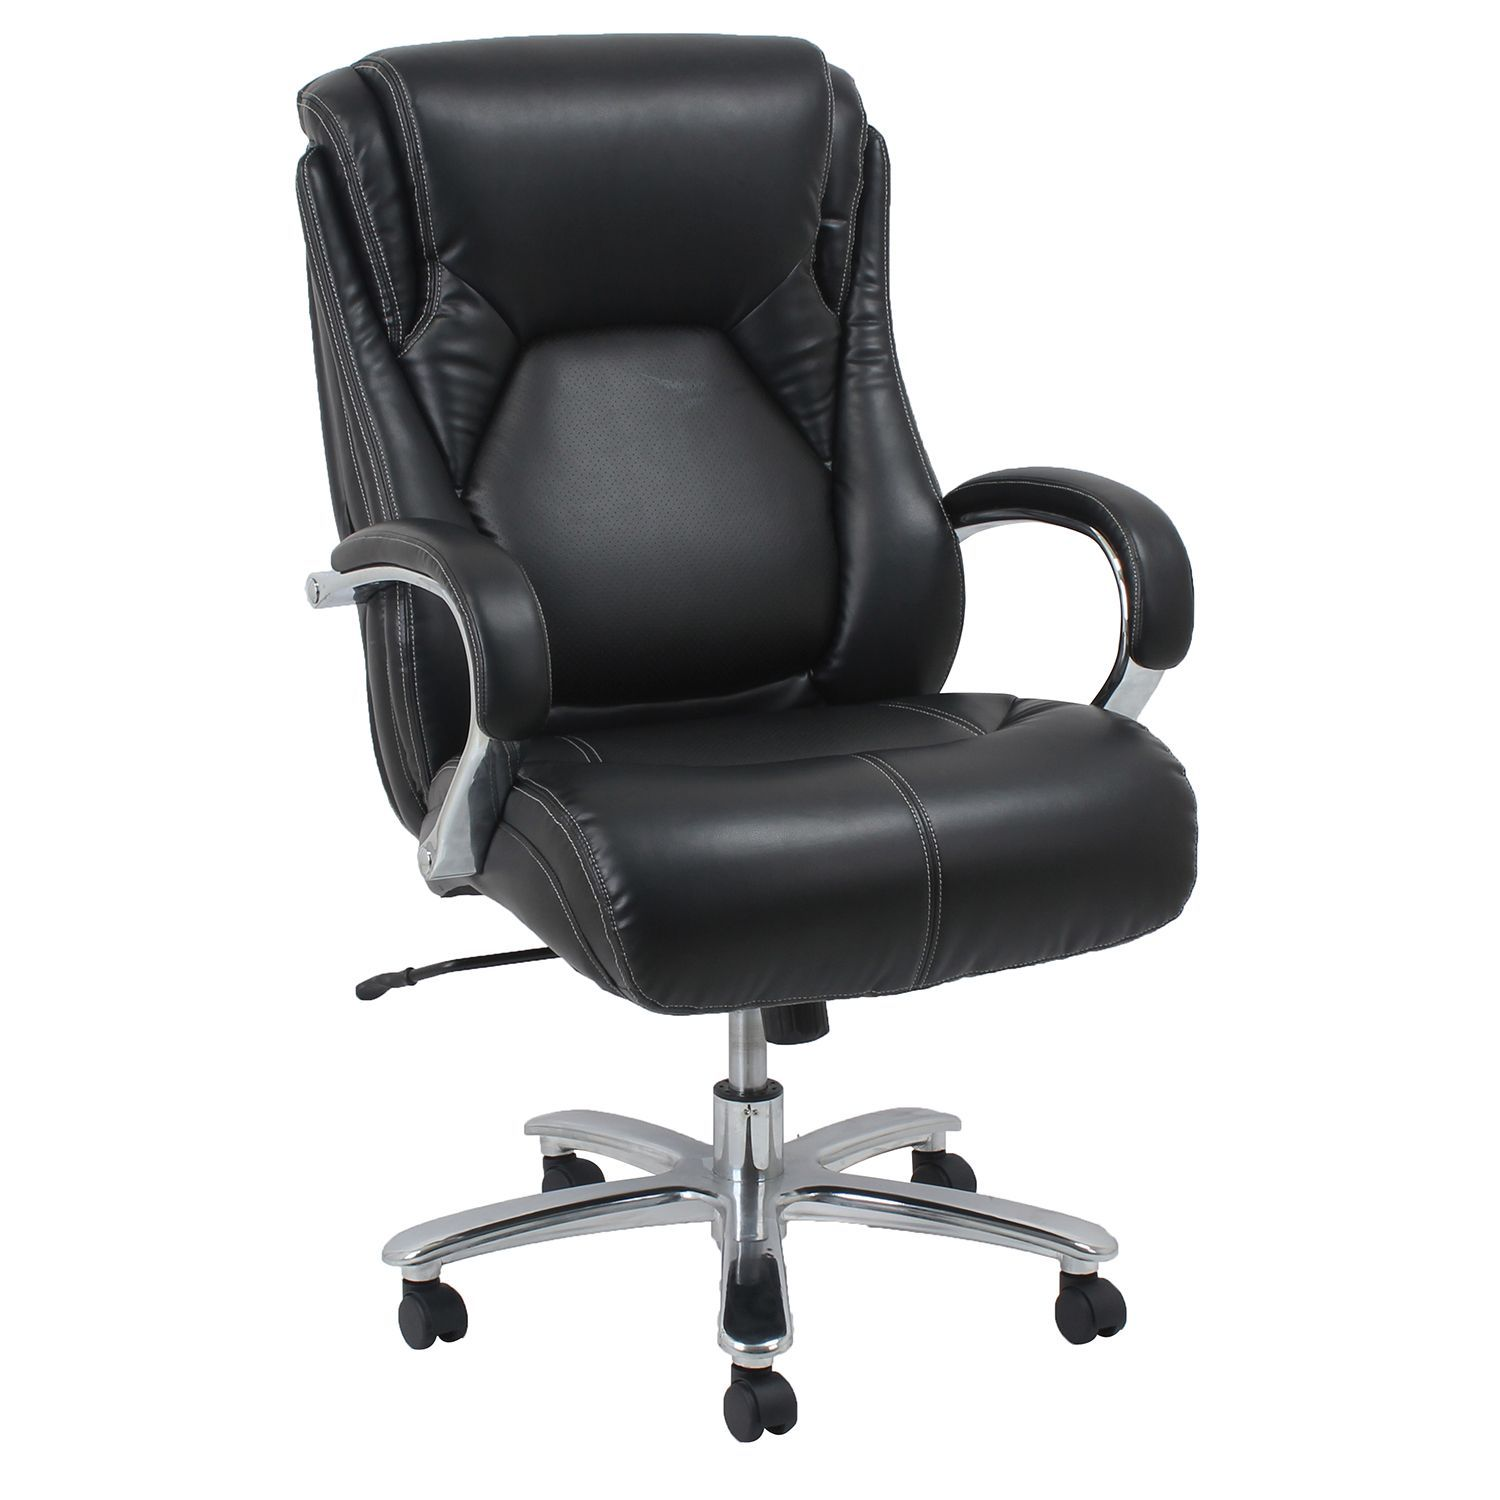 Barcalounger Big Tall Executive Office Chair Black Supports Up